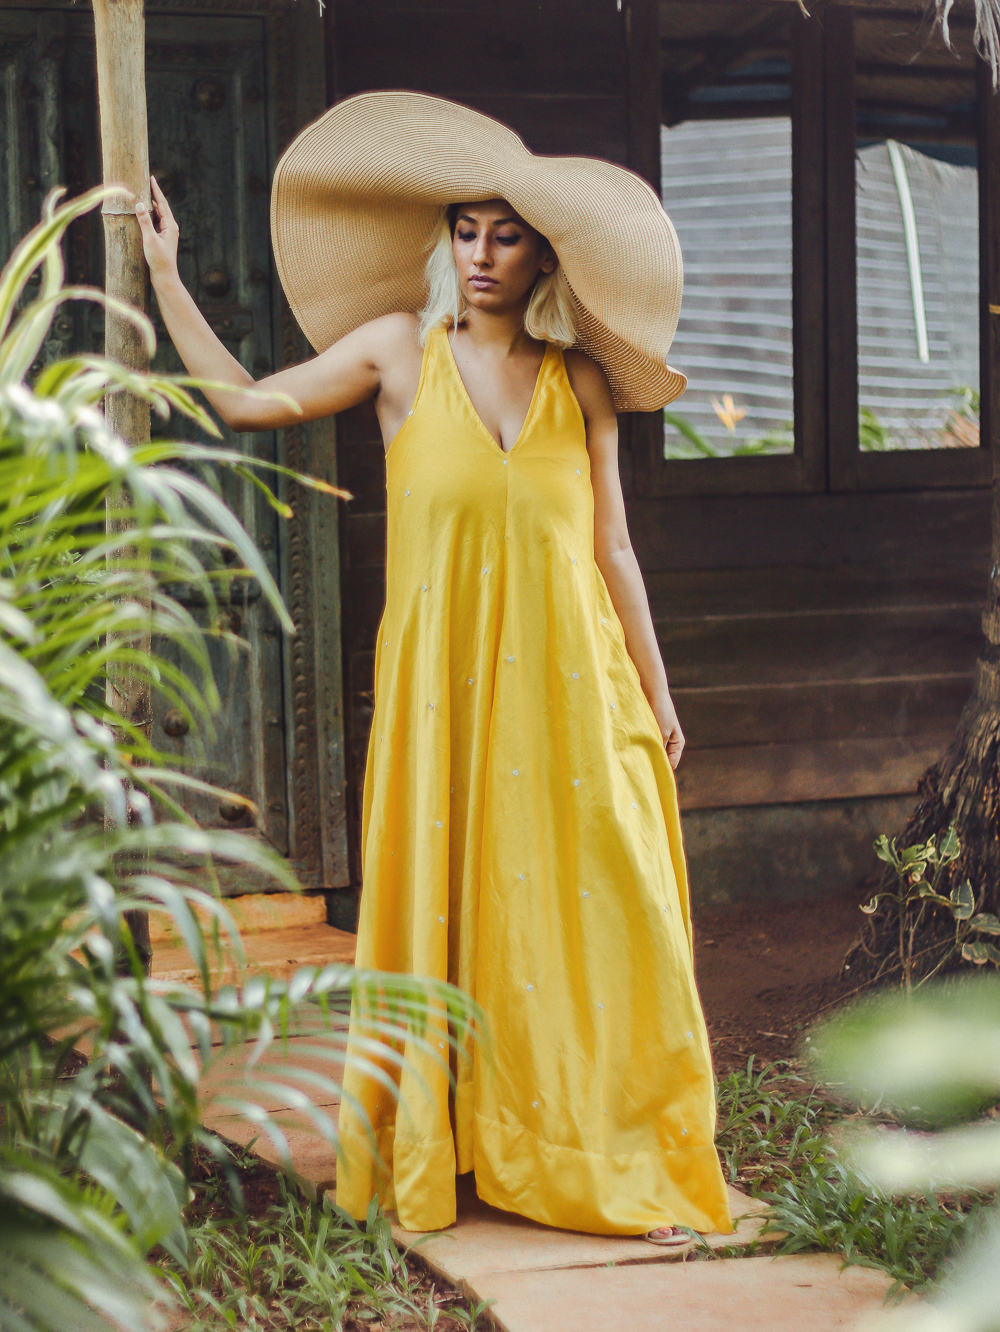 Nicobar Dress , Goa Fashion , Boho ; Yello maxi ; Leela Cottages ; Goa ; Summer Getaway ; Travel ; Ashwem Beach ; Sea view ; By the Ocean ; Cottage Life ; Bohemian look,  Bright Colors ; straw hat  ; Palm Trees ; Nature Lover ; Slow living ; photography ;  Naznin ; Naznin Suhaer  ; indian blogger ; hyderabad fashion bloggers ; hyderabad bloggers ; hyderabad fashion blogger ; I Dress for the Applause ; Hyderabad ;